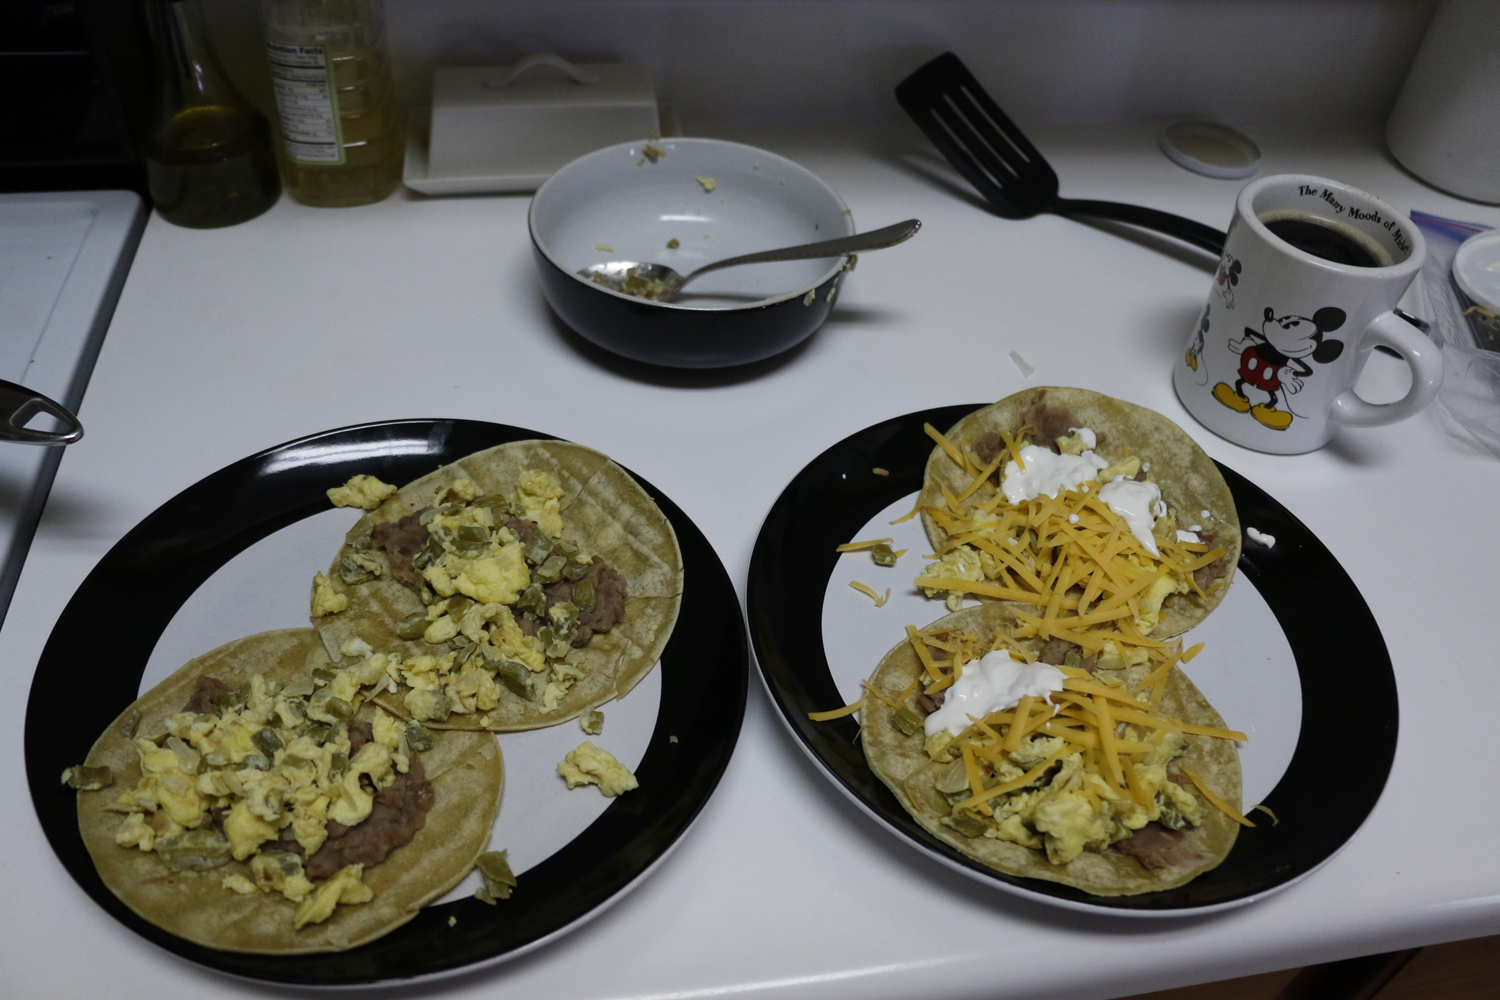 Cactus with egg tacos